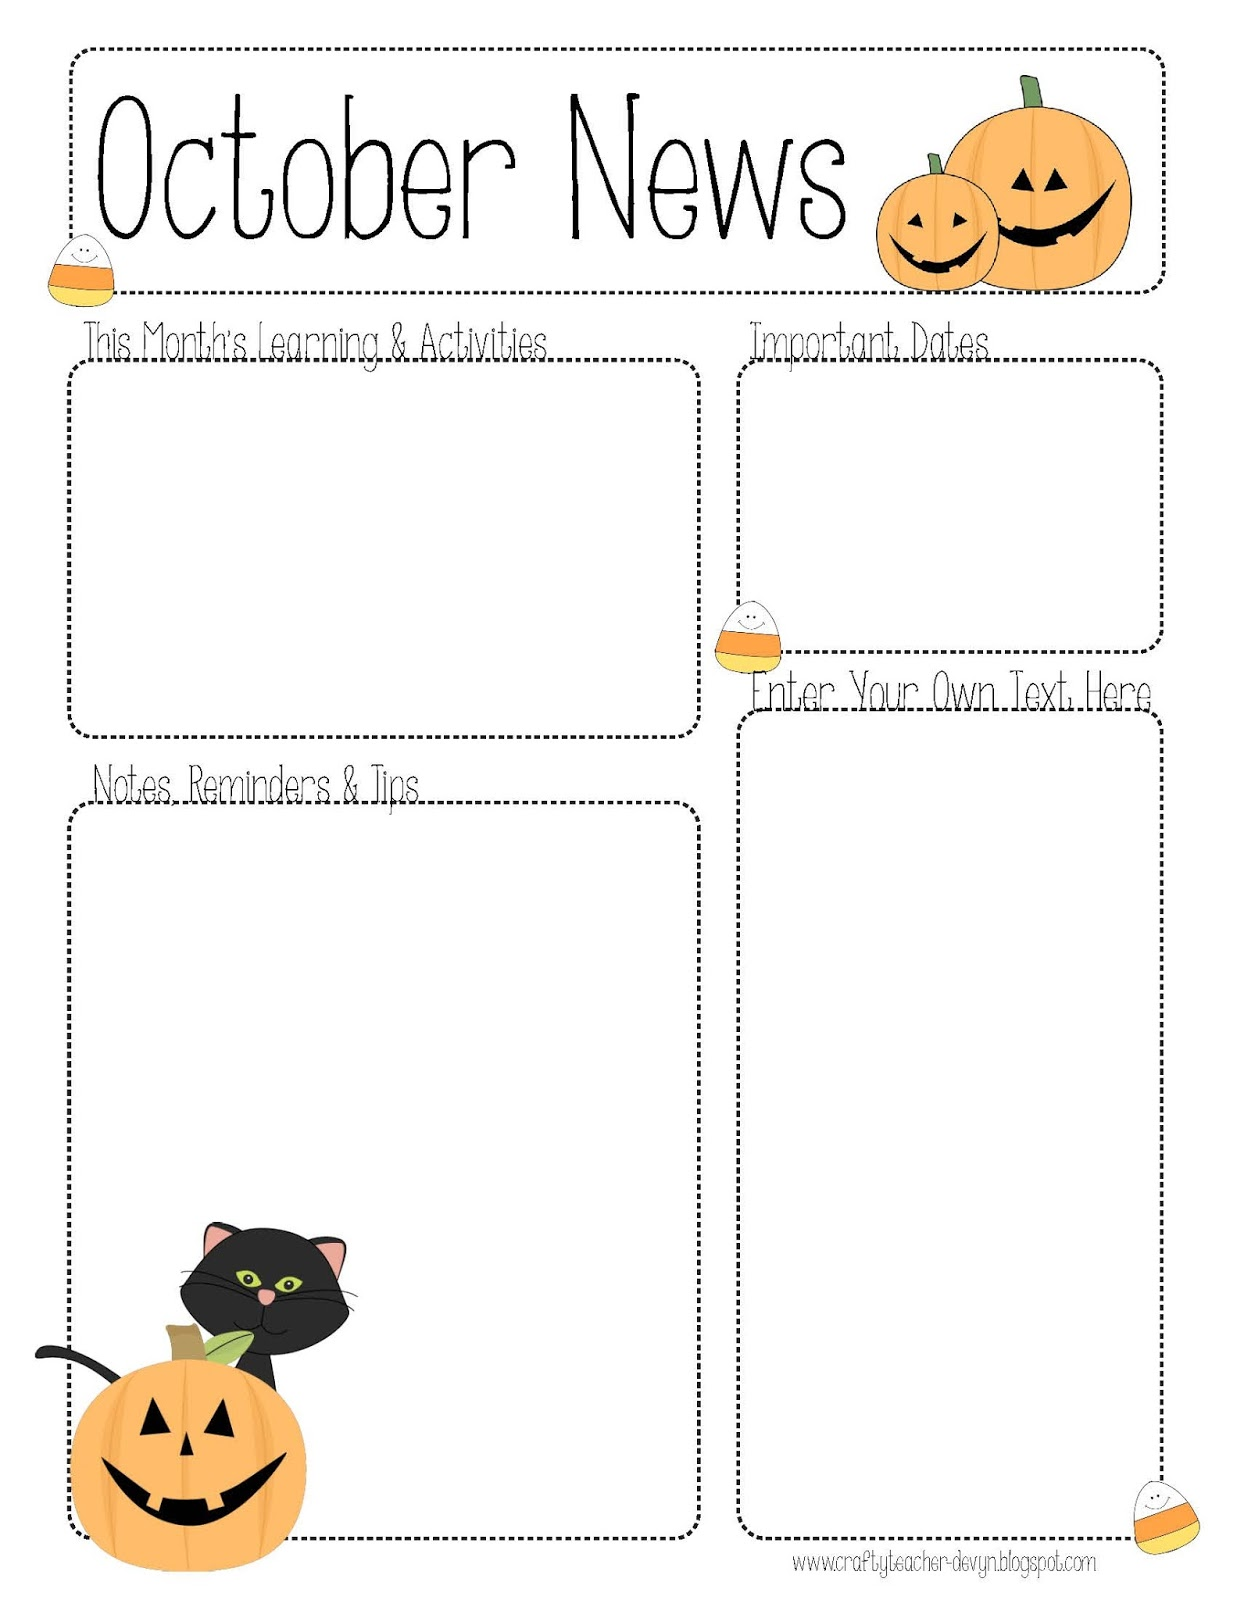 OctoberNewsletter October Clroom Newsletter Template Generator on